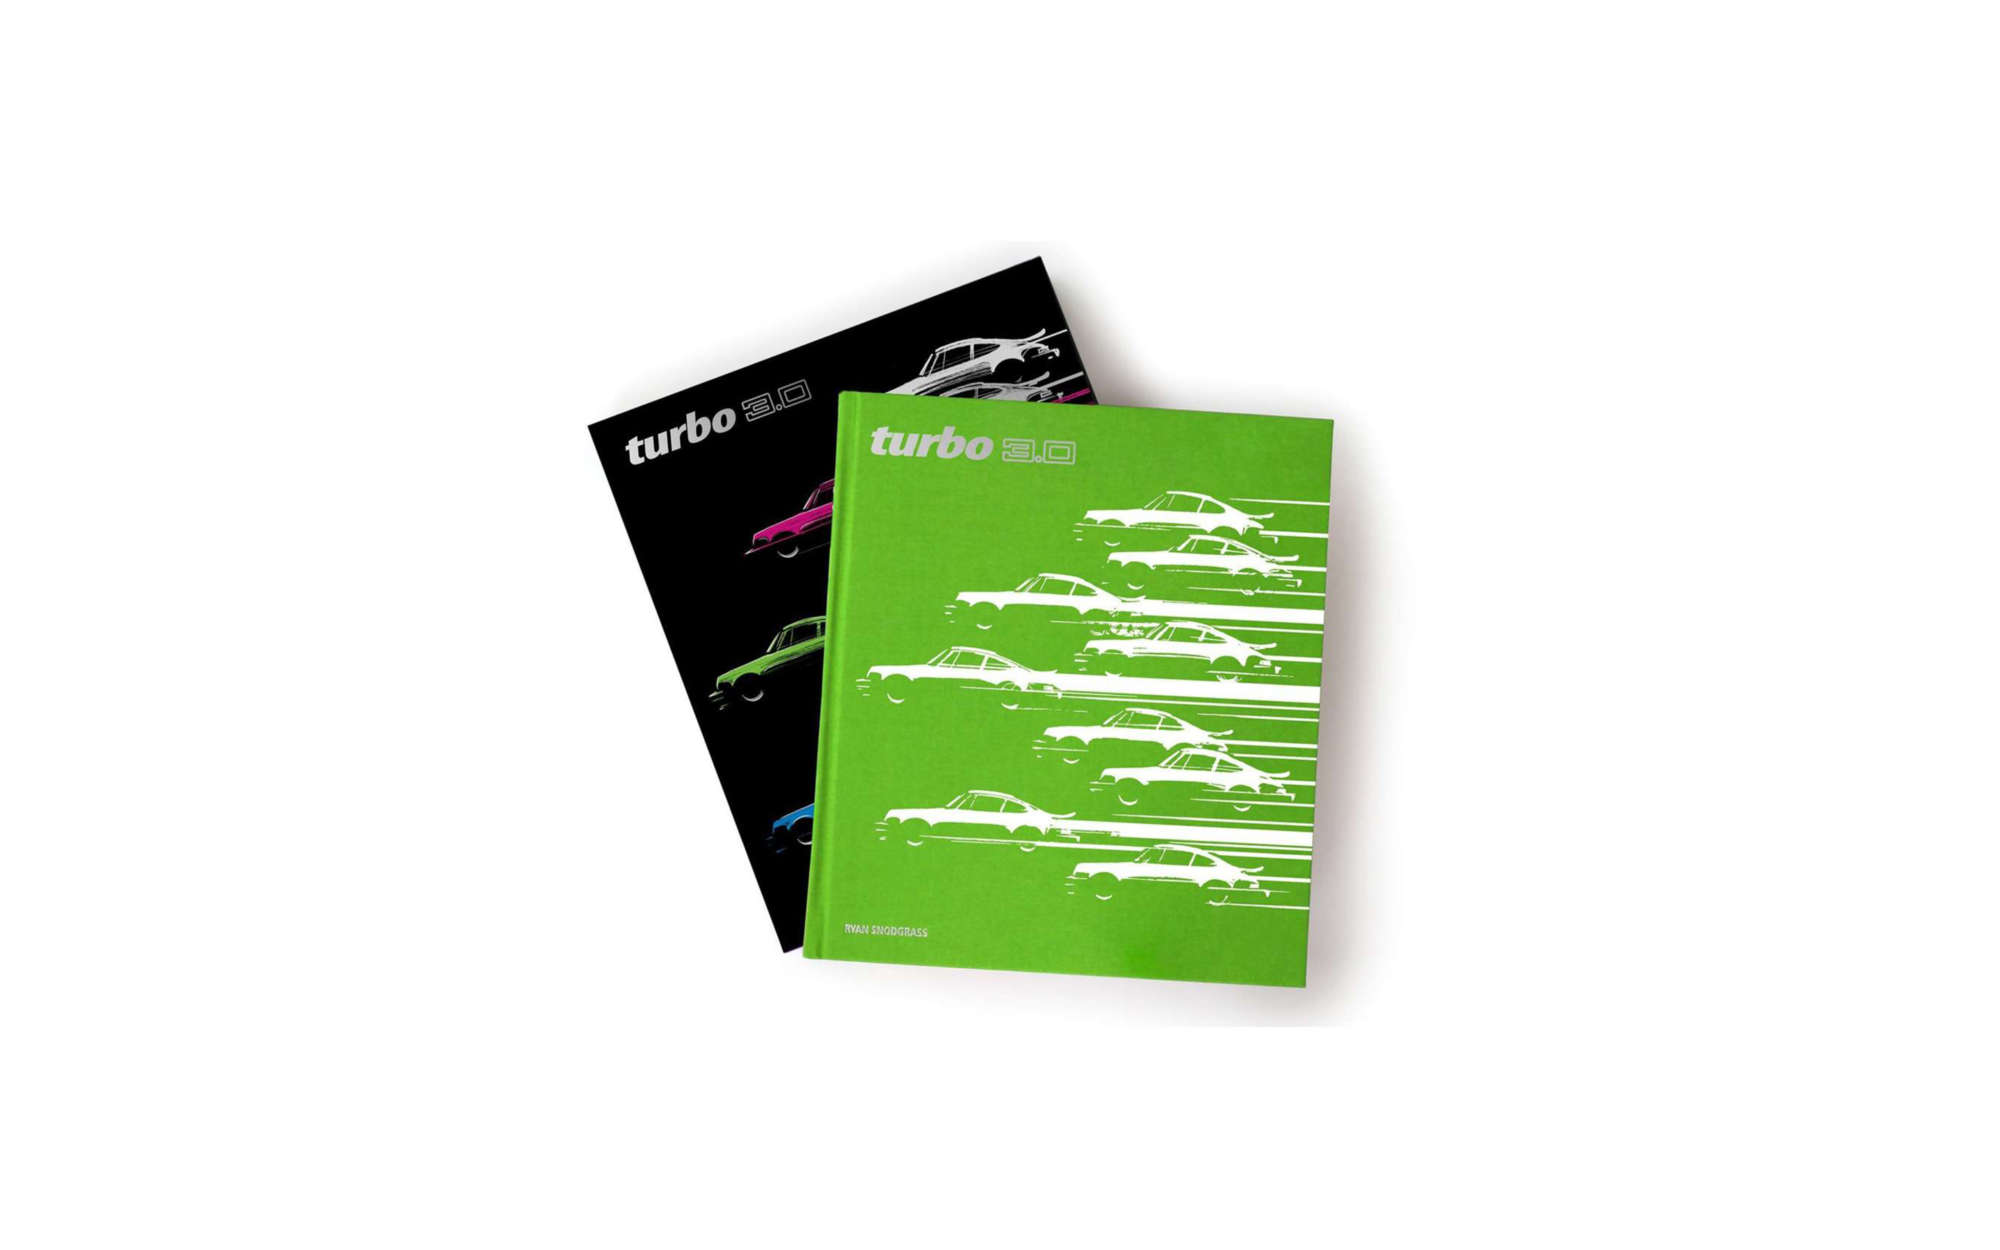 Elferspot Competition – Win A Turbo 3.0 Book